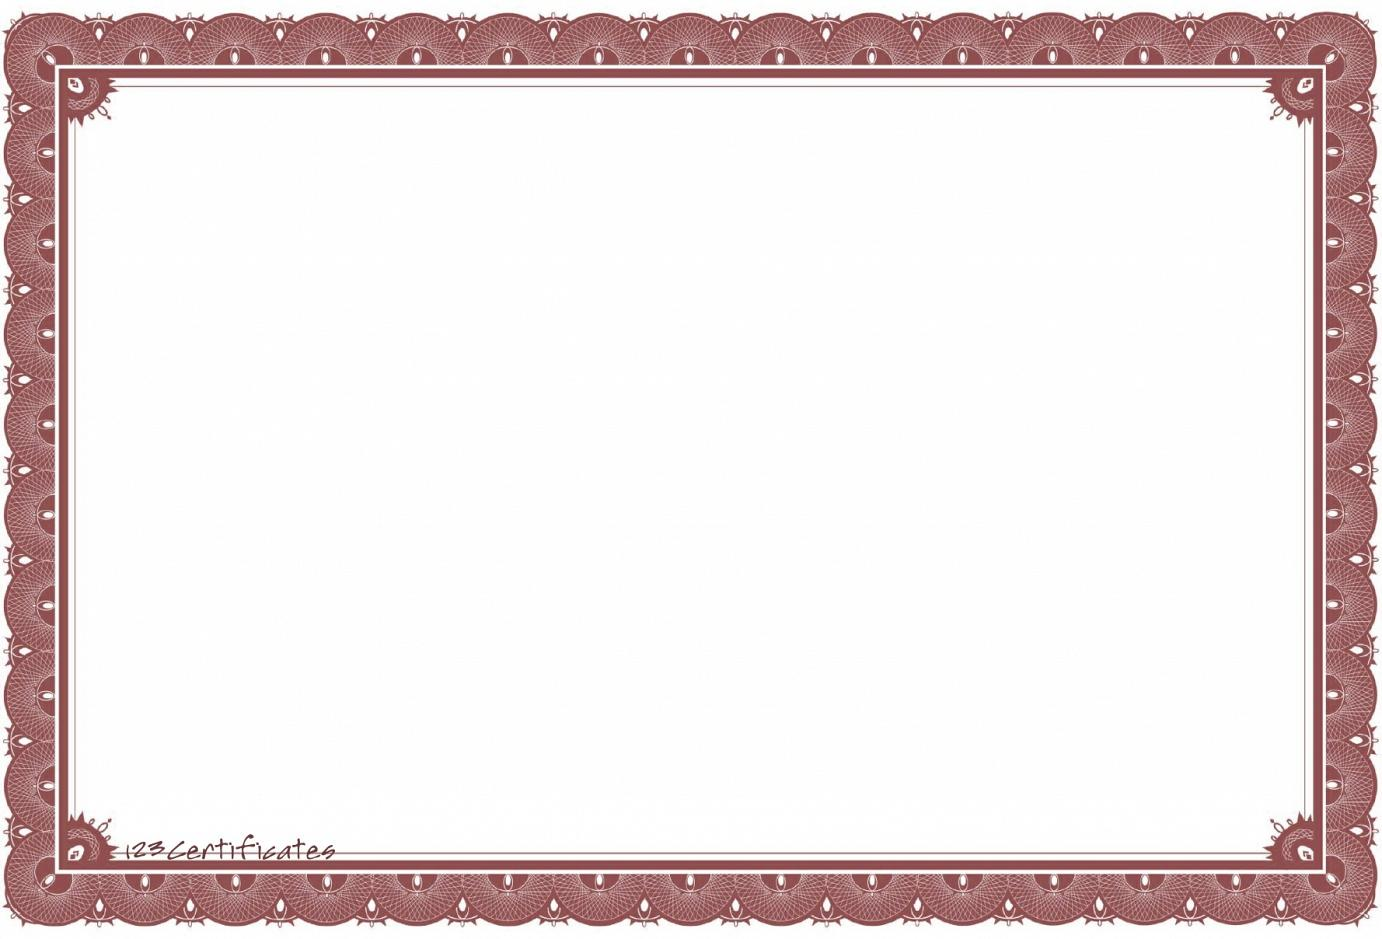 18 vector certificate border templates shotgun images for Photoshop certificate template